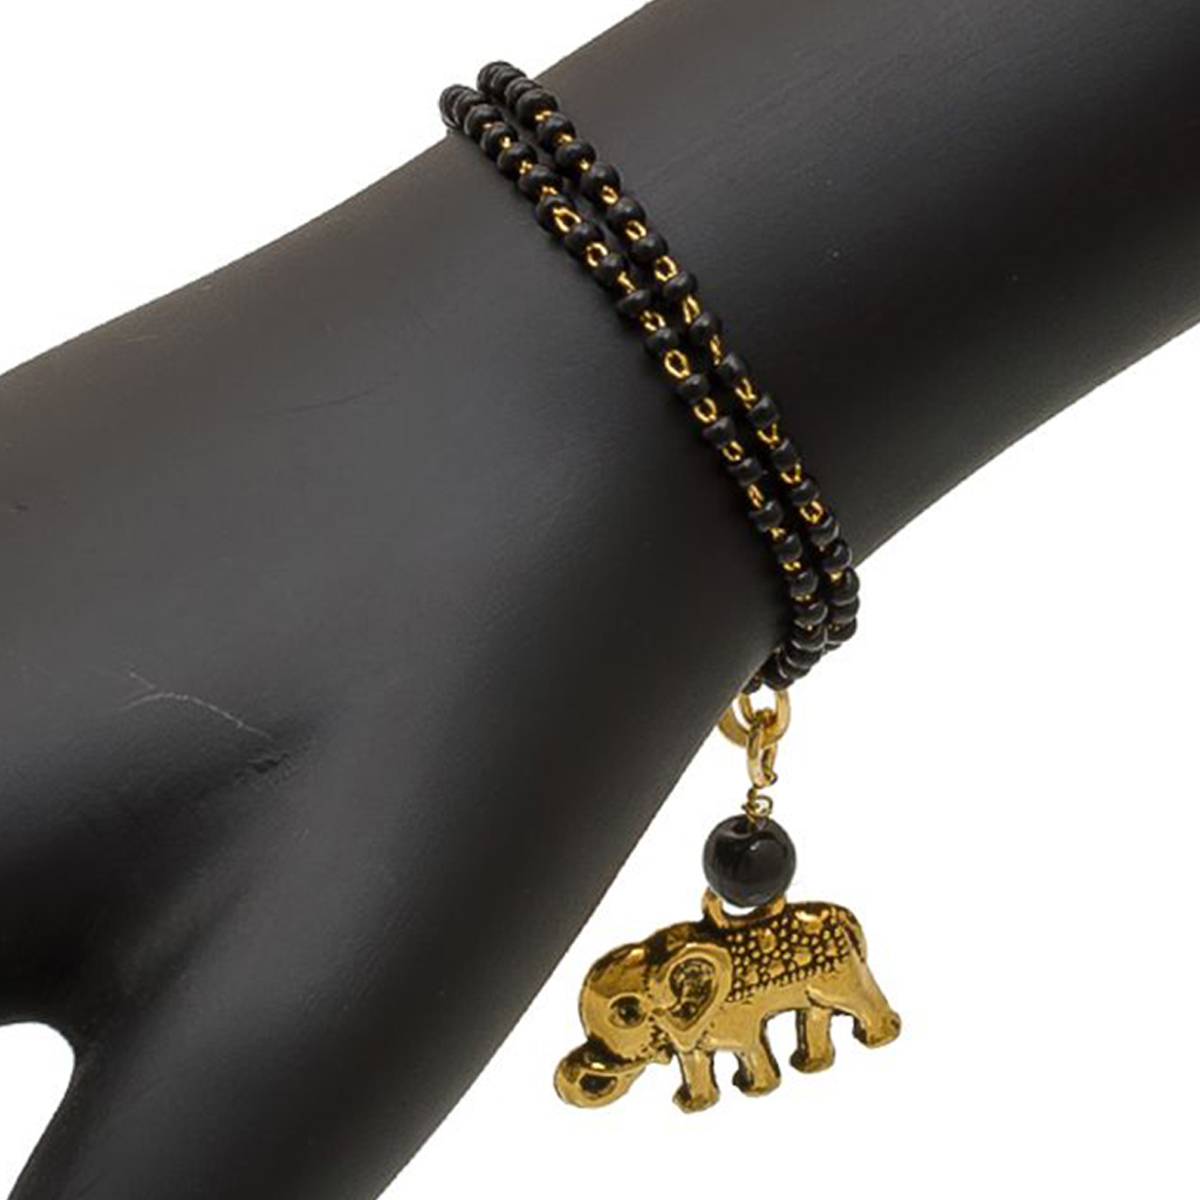 Opulent Golden & Black Colored Mix Metal Bracelet Cum Bangle